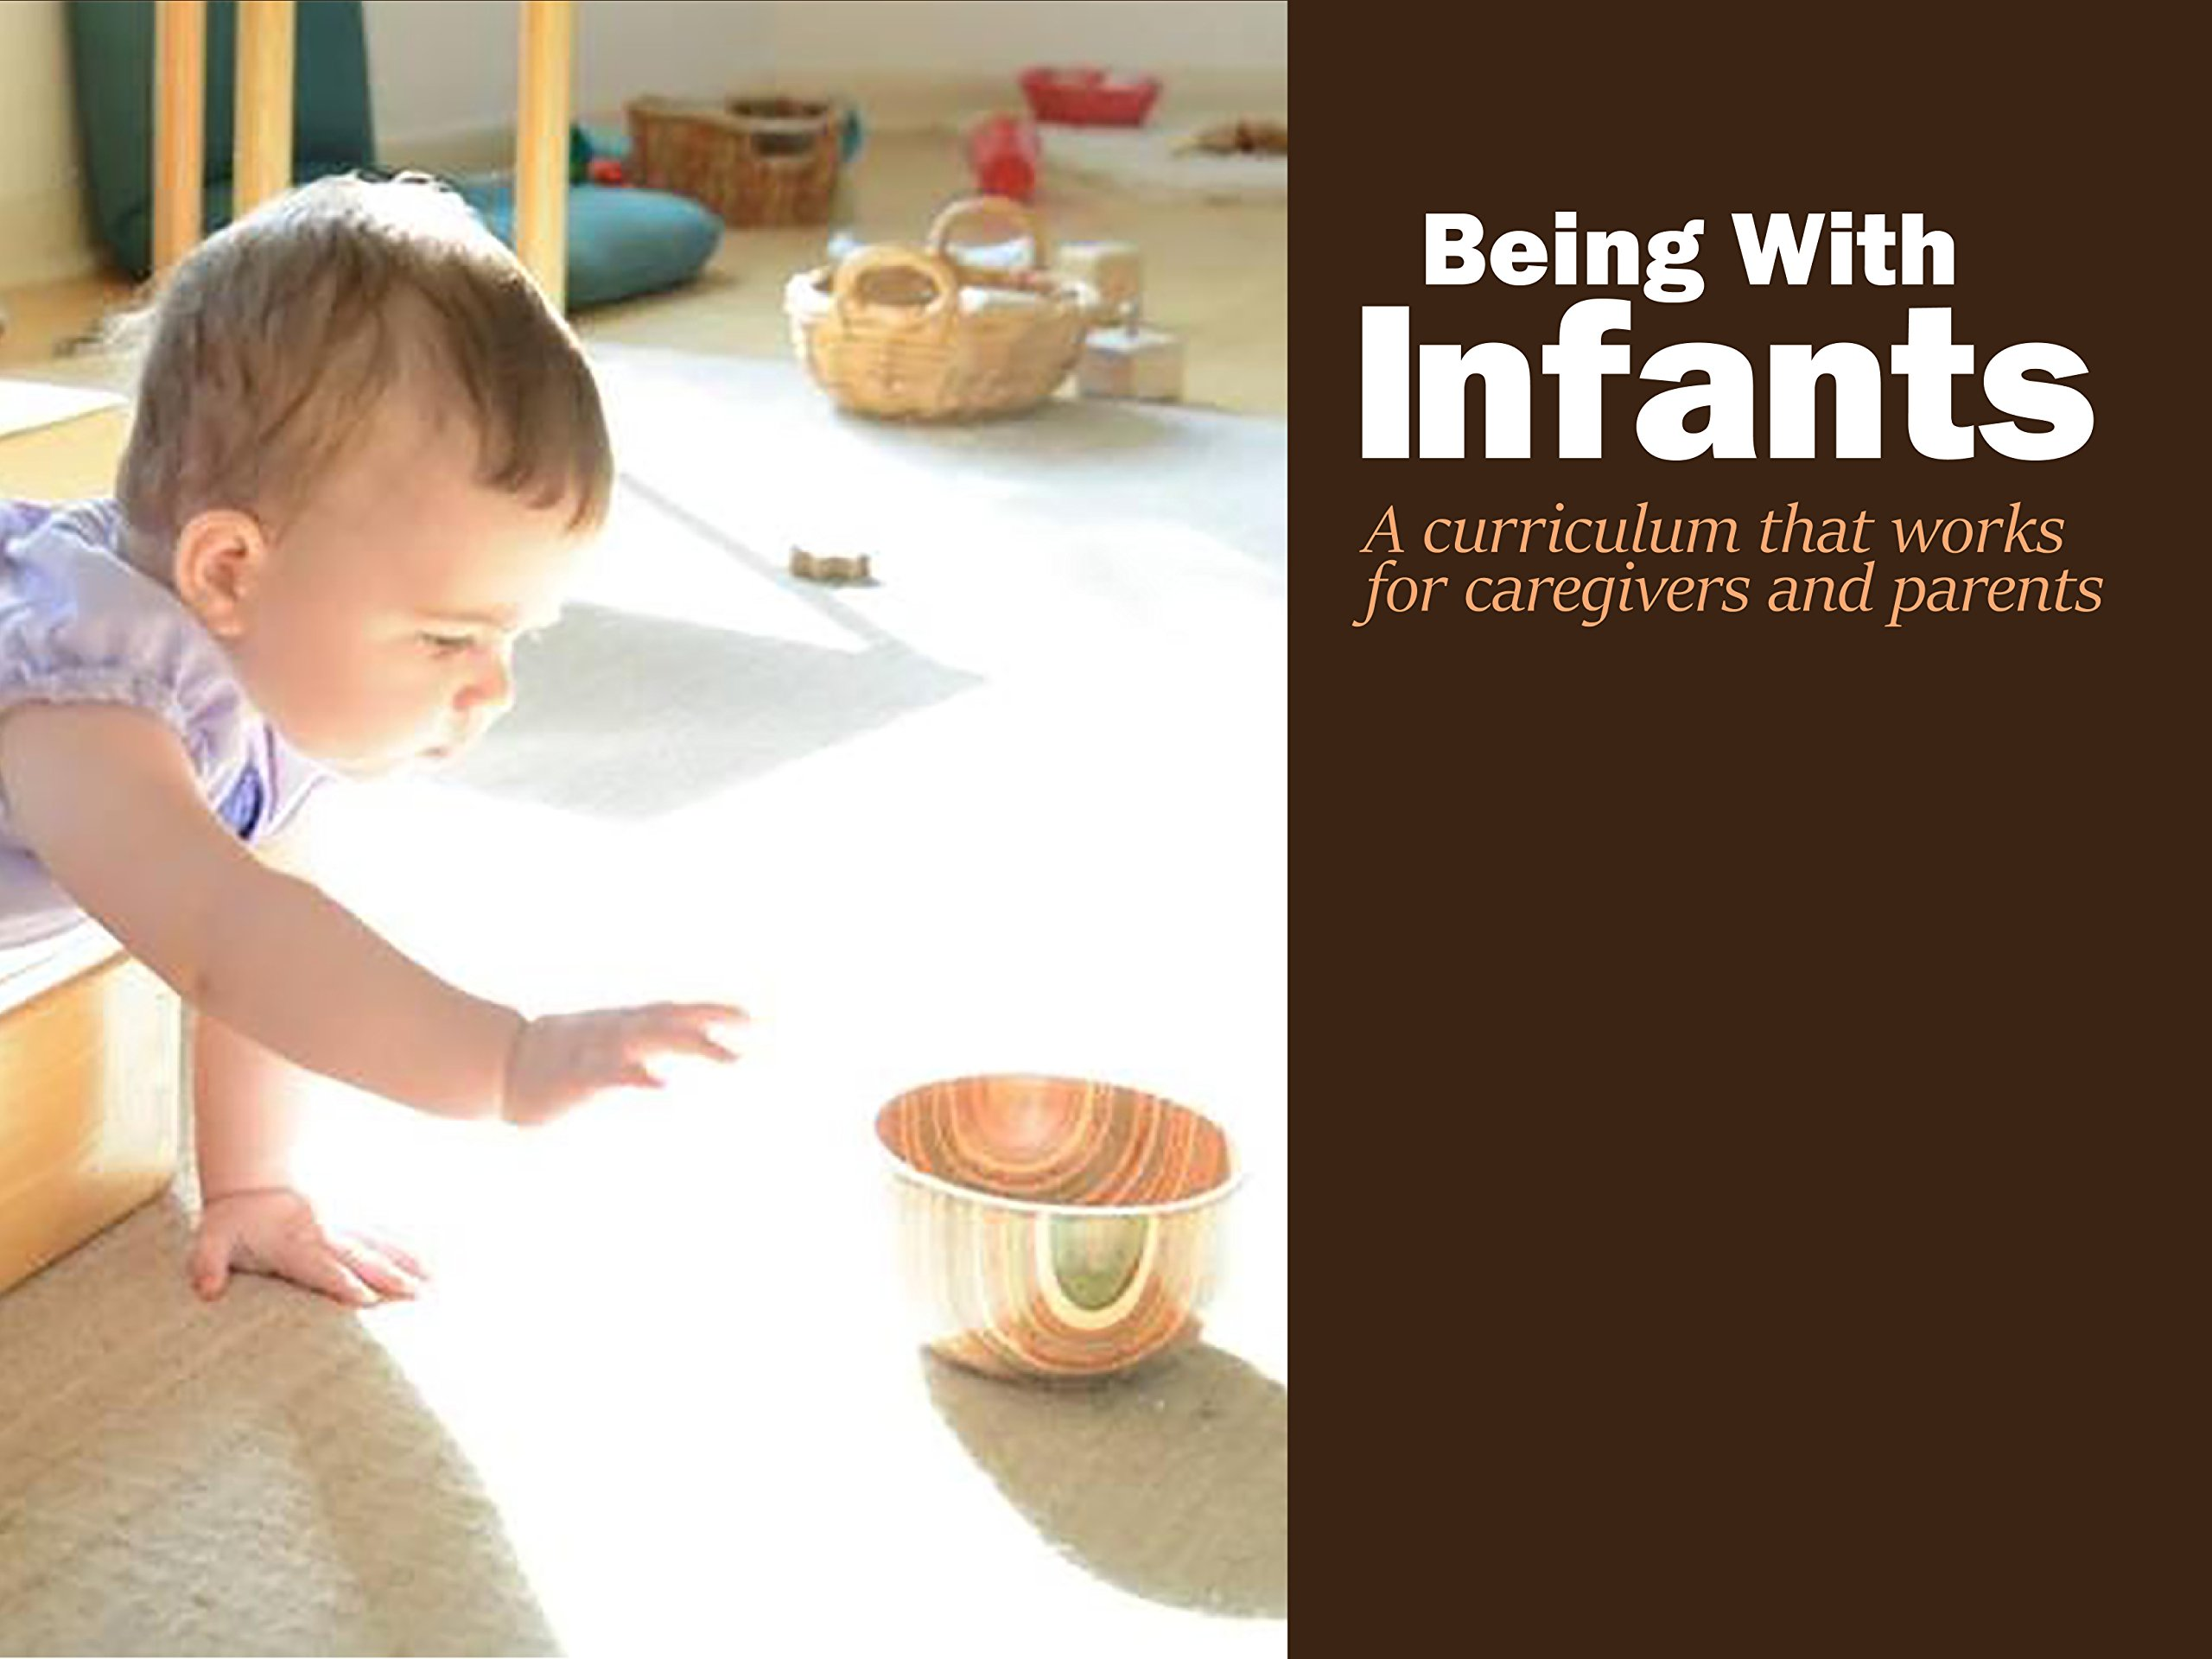 Being With Infants - Season 1